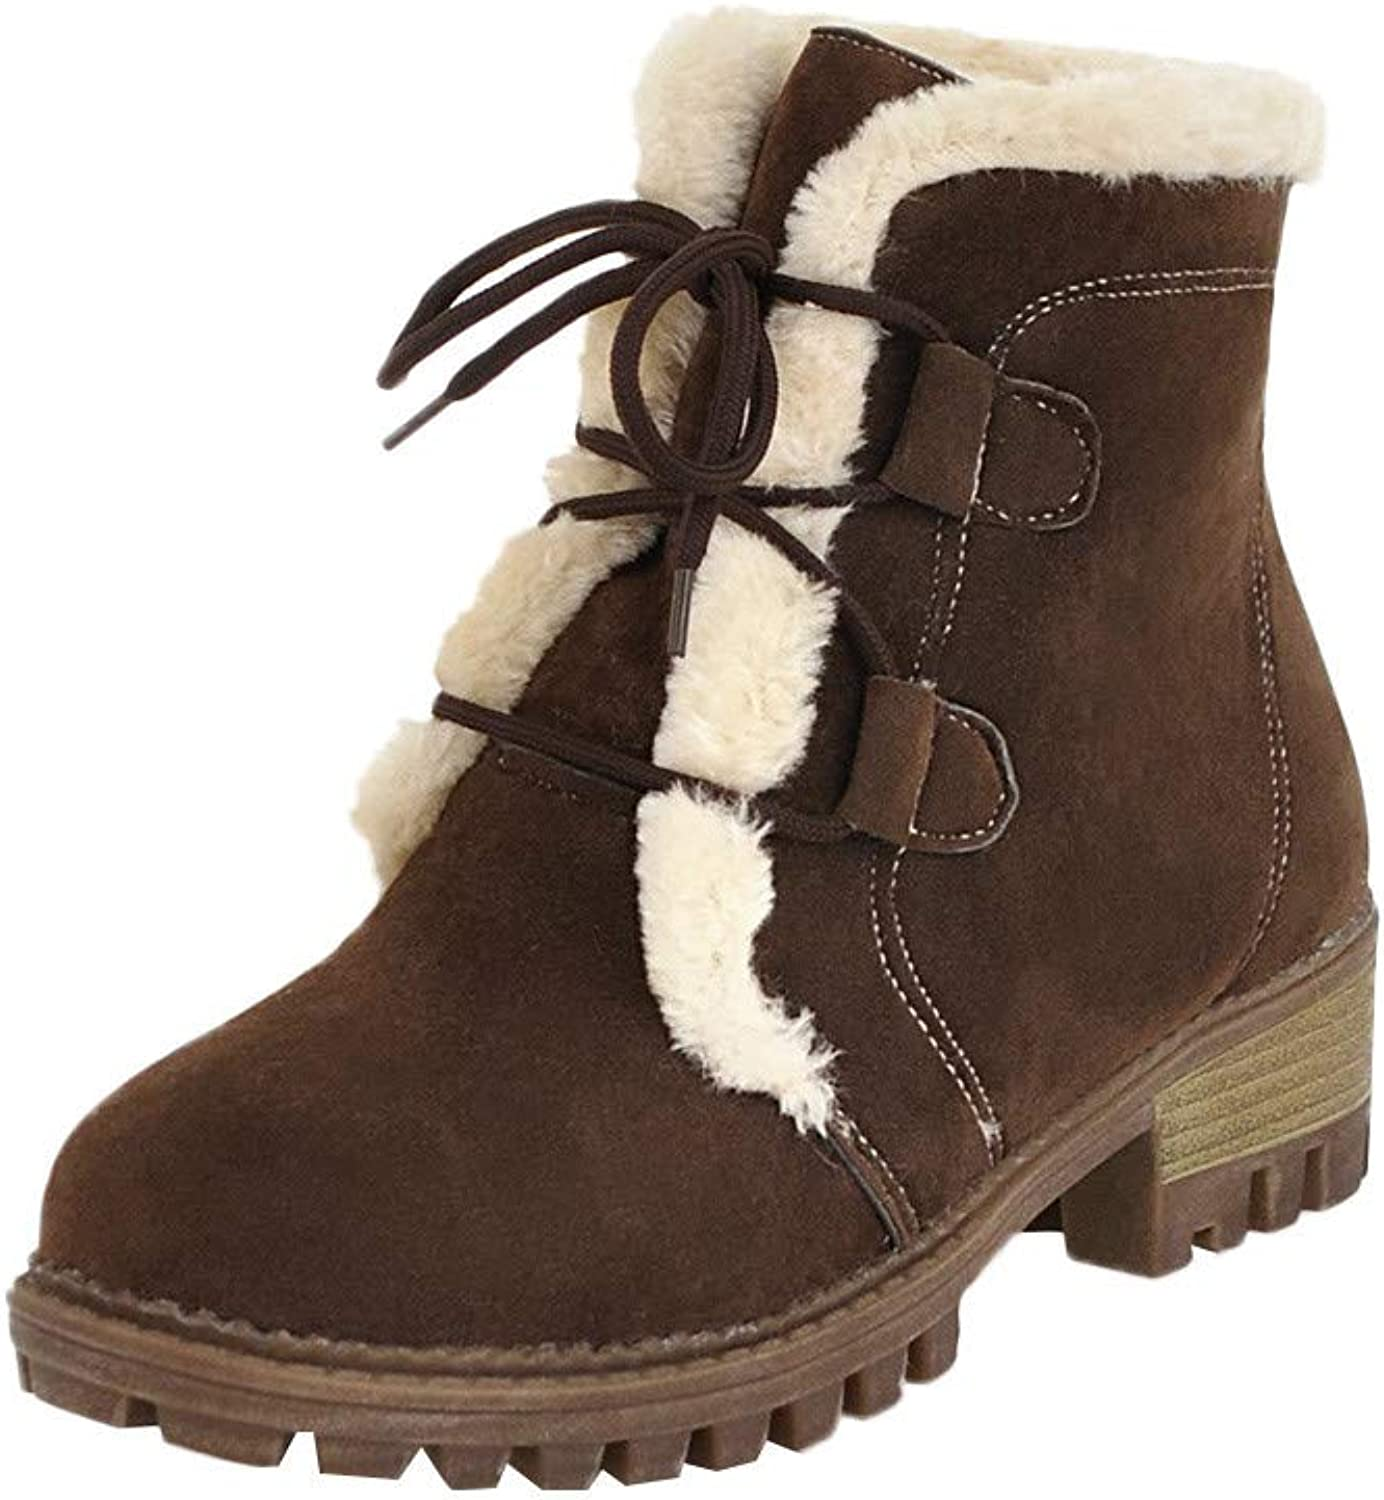 Goodtrade8 Clearance Ankle Snow Boots for Women Winter Outdoor Leisure Plus Velvet shoes Lace-Up Non-Slip Round Toe Thin Warm Snow Boots (8, Brown)